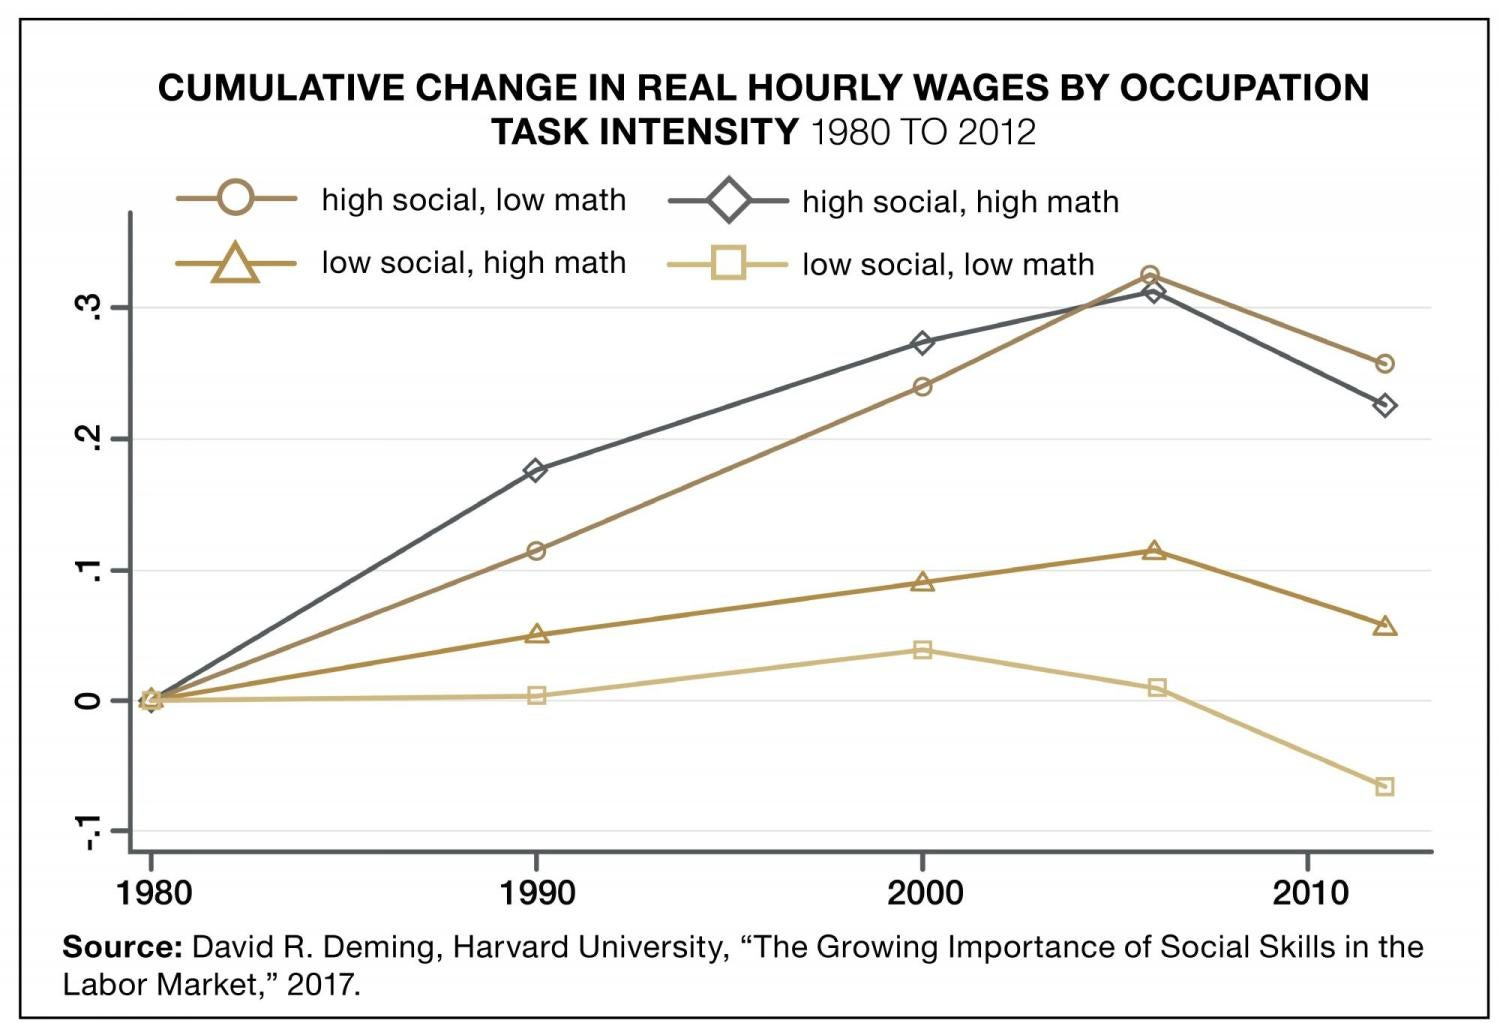 Graphic showing cumulative change in real hourly wages by occupation task intensity 1980 to 2012